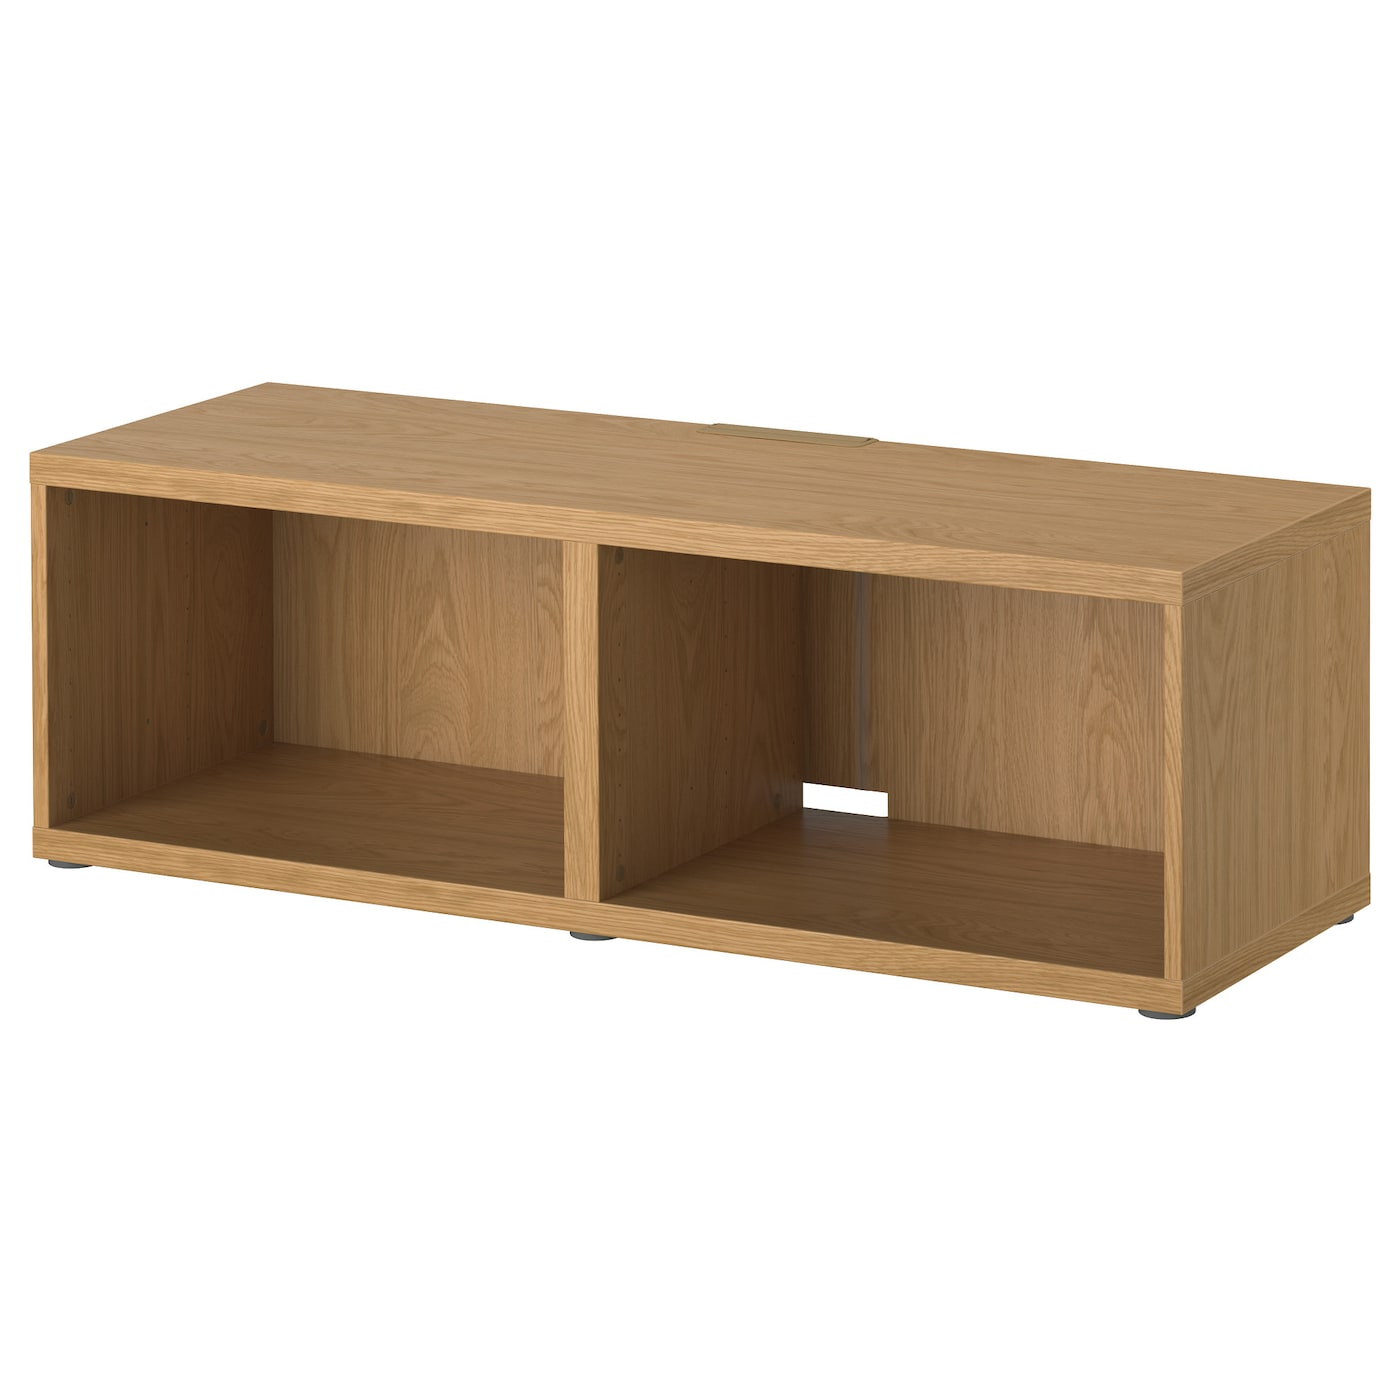 IKEA BESTÅ TV bench If you want to organise inside you can complement with BESTÅ interior fittings.